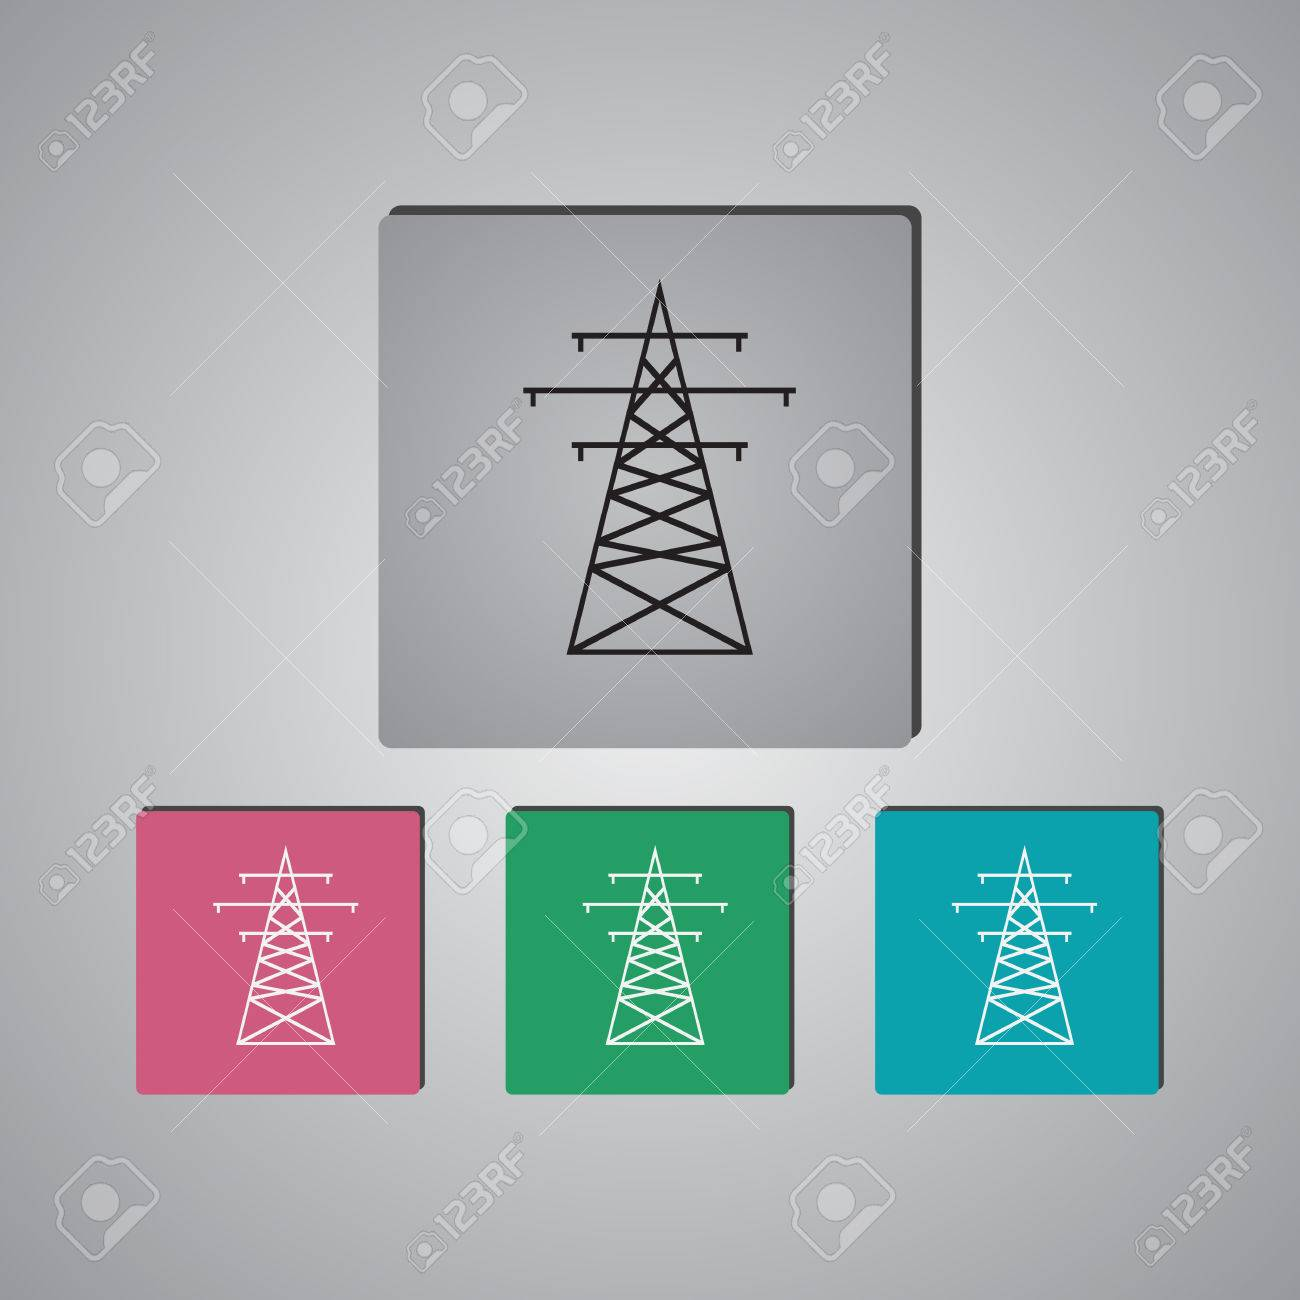 Magnificent Triangle Wire Pole Images - Electrical and Wiring ...